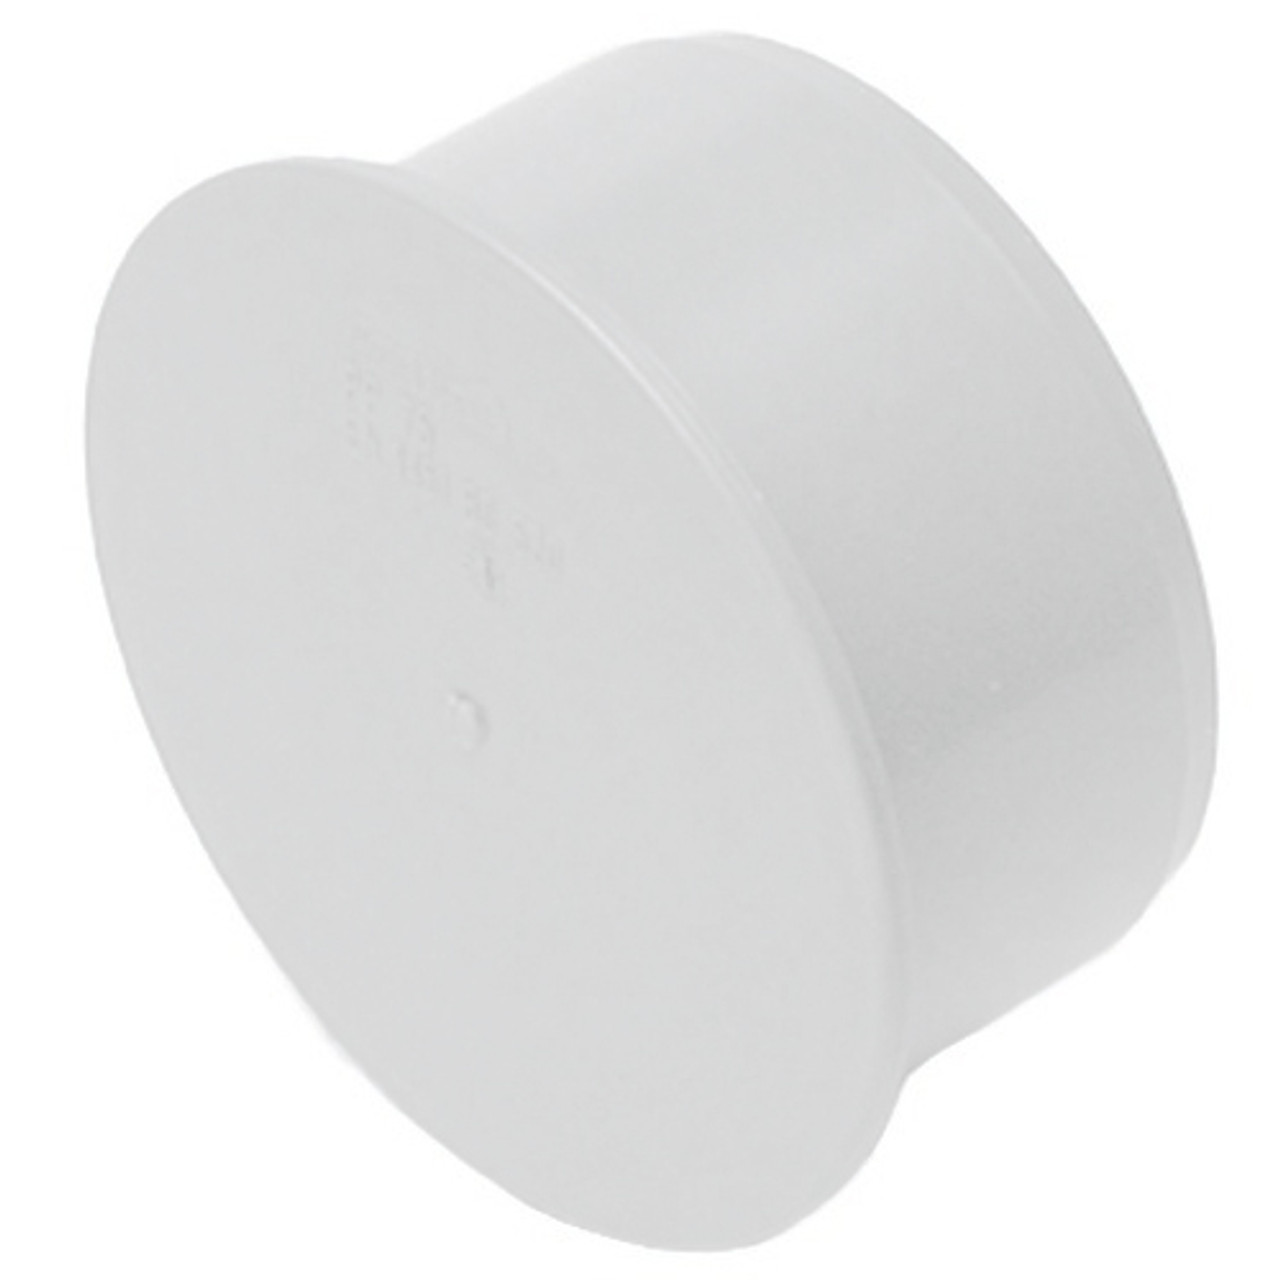 Socket plug Sewer waste 32 mm white Push-fit Waste Pipe Stop End Blanking Cap